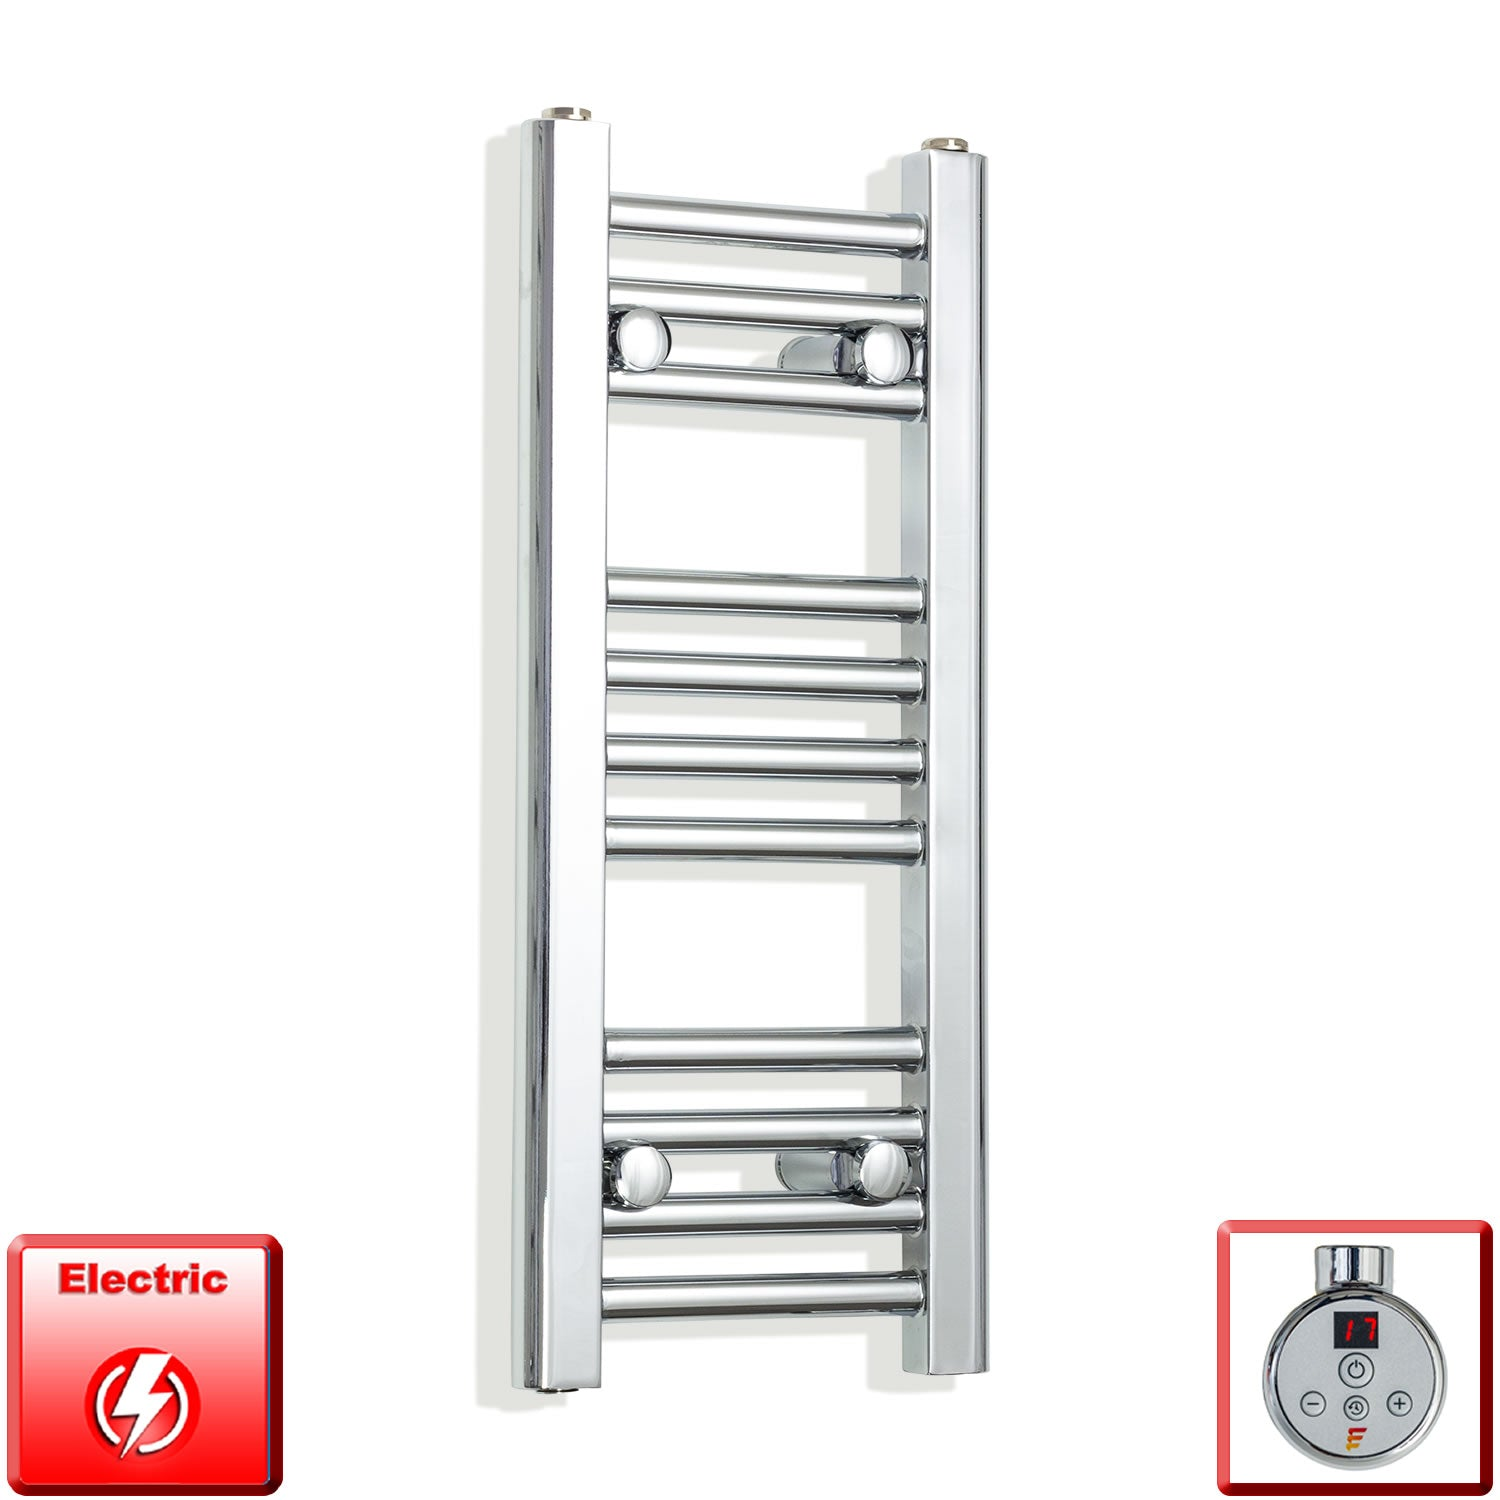 250mm Wide 600mm High Pre-Filled Chrome Electric Towel Rail Radiator With Thermostatic DIGI Element